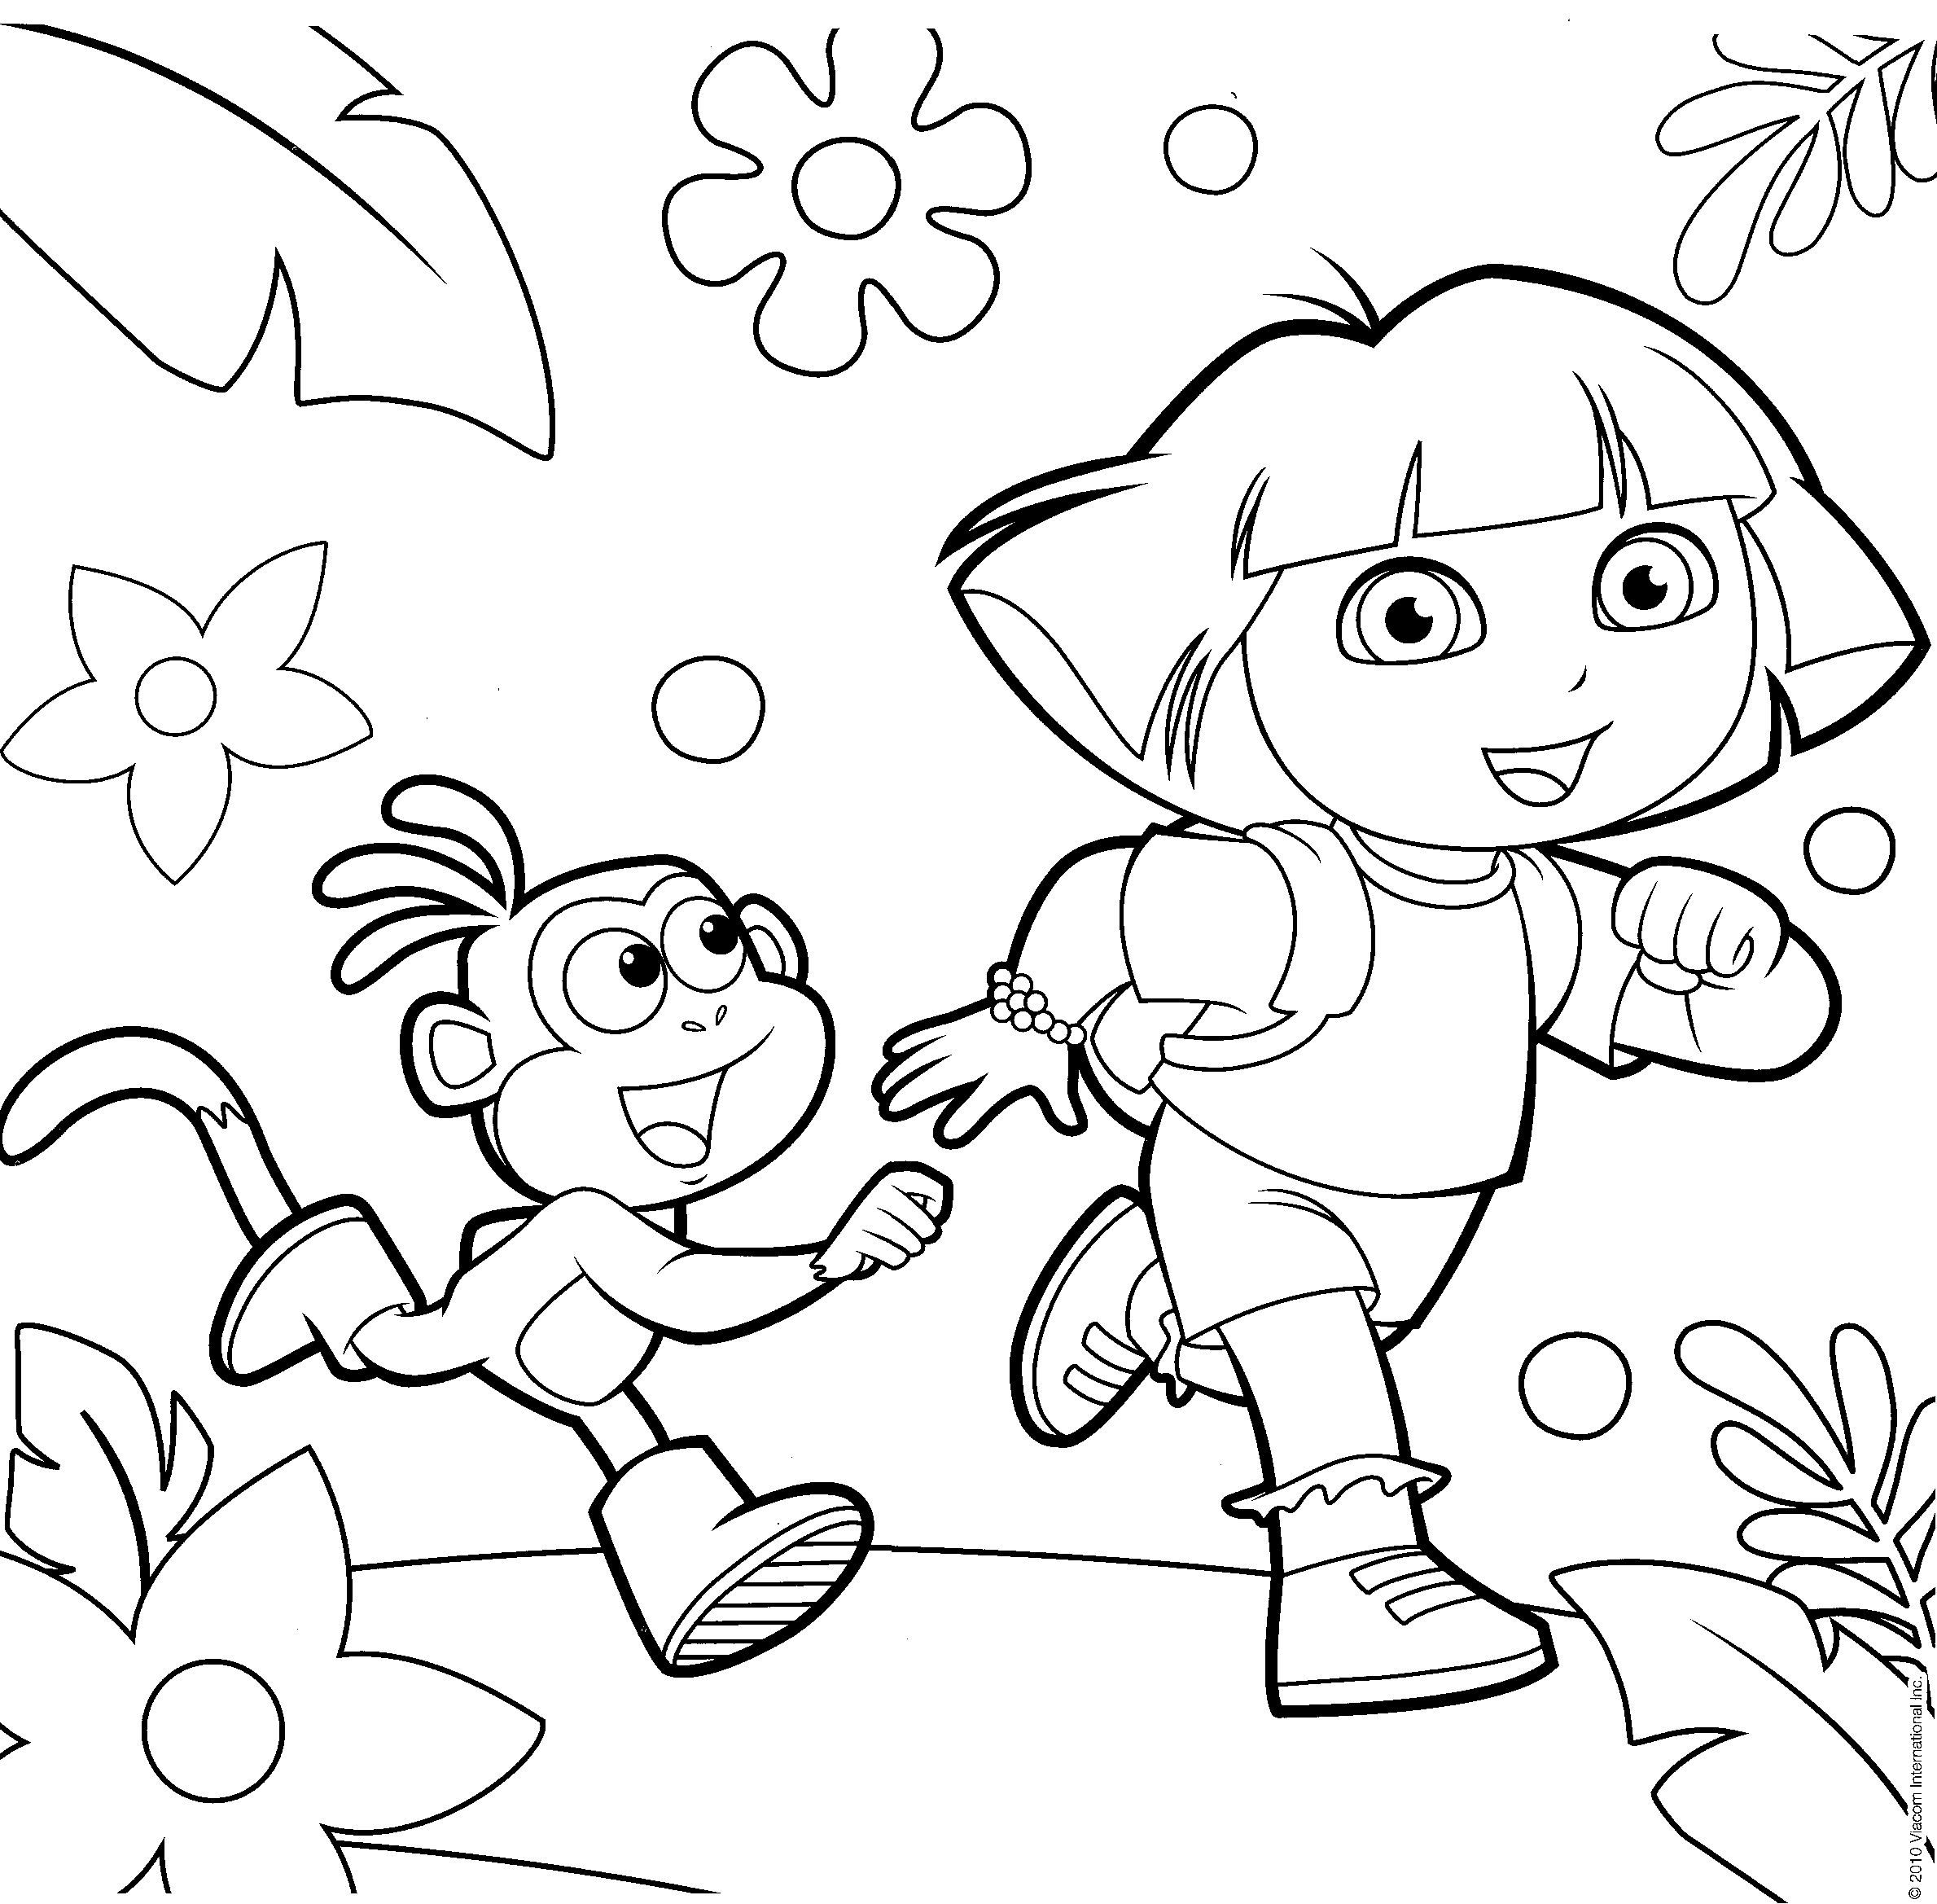 dora pictures to color and print lovely dora printable coloring pages for kids boys and dora to color and print pictures